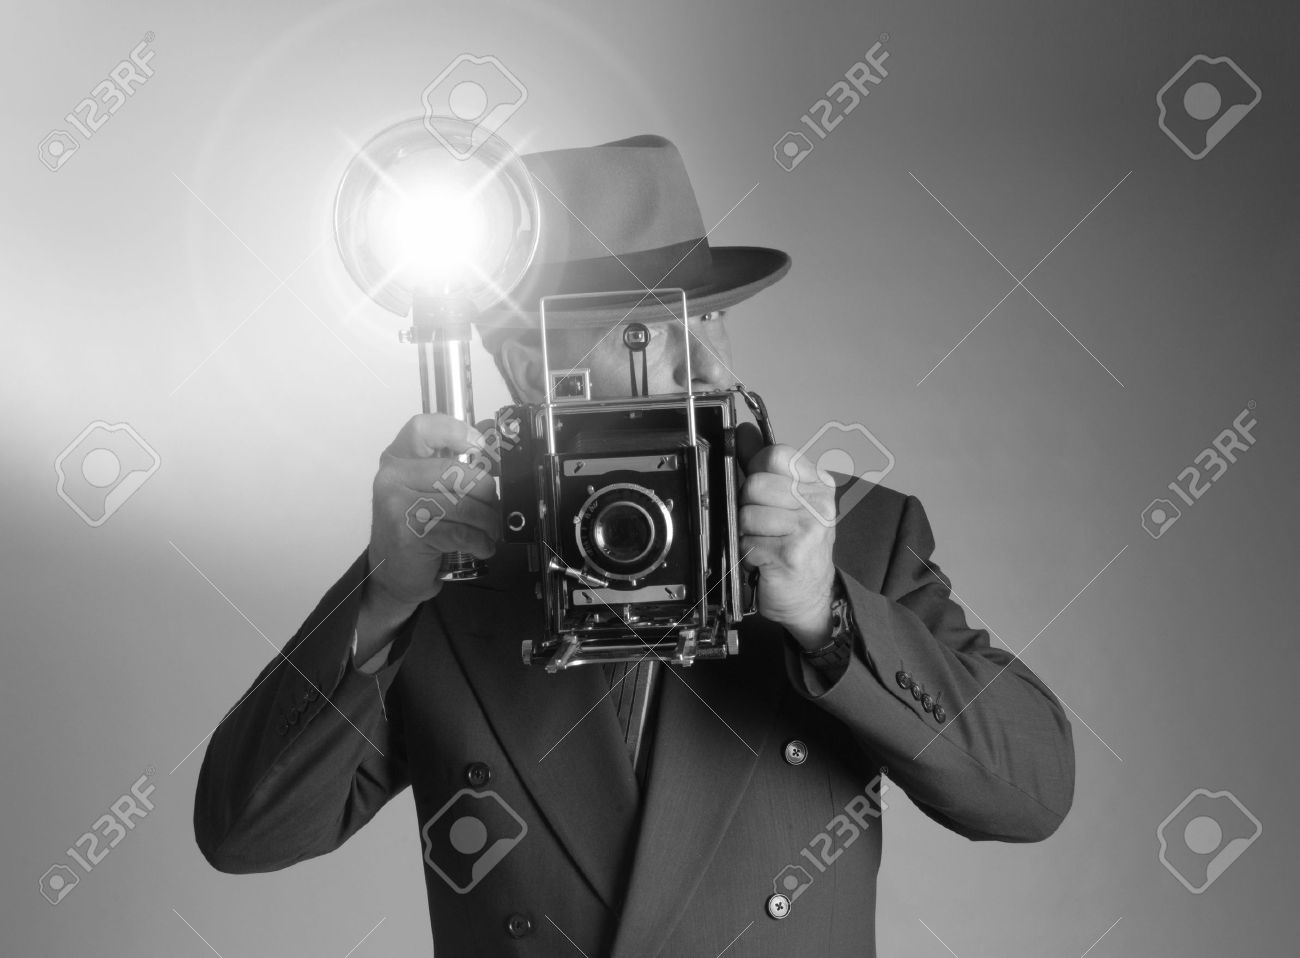 8f48bcc4a117e Black   White shot of a retro 1940 s stylephotographer wearing a Fedora hat  and holding a